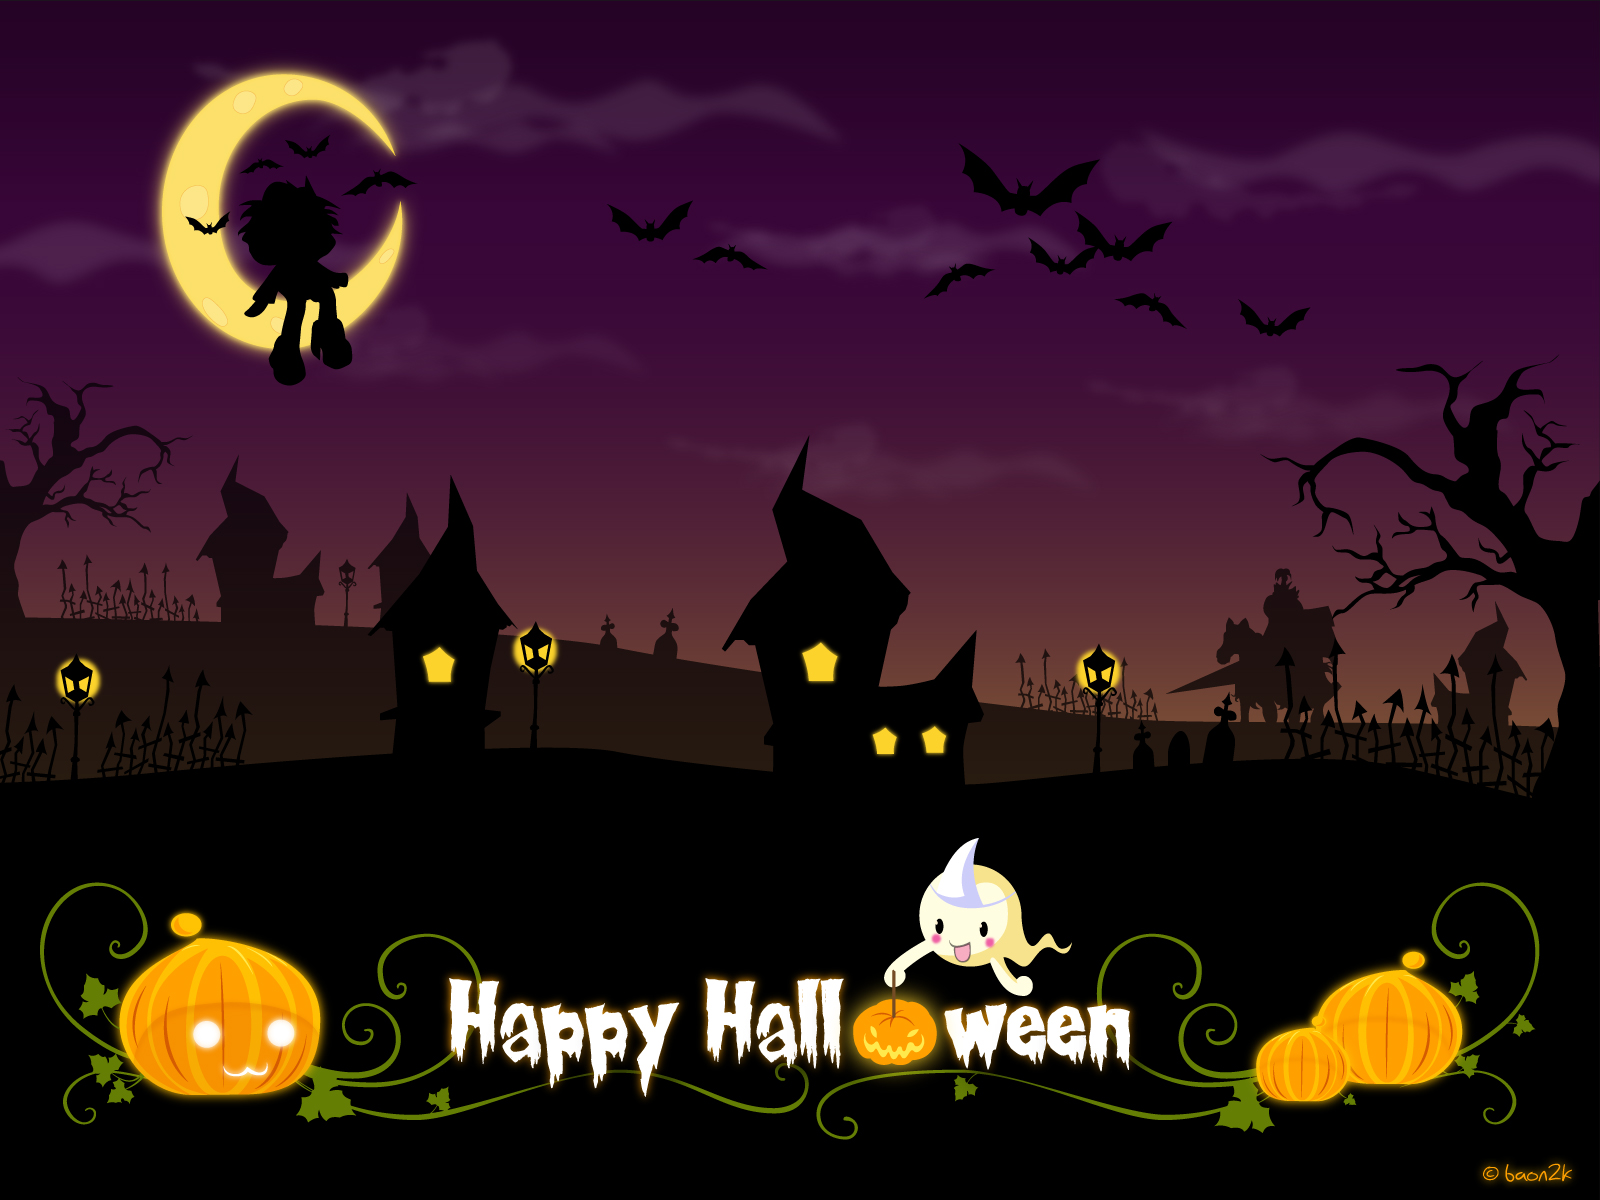 download 30 Halloween Desktop Wallpapers Best Design Options 1600x1200